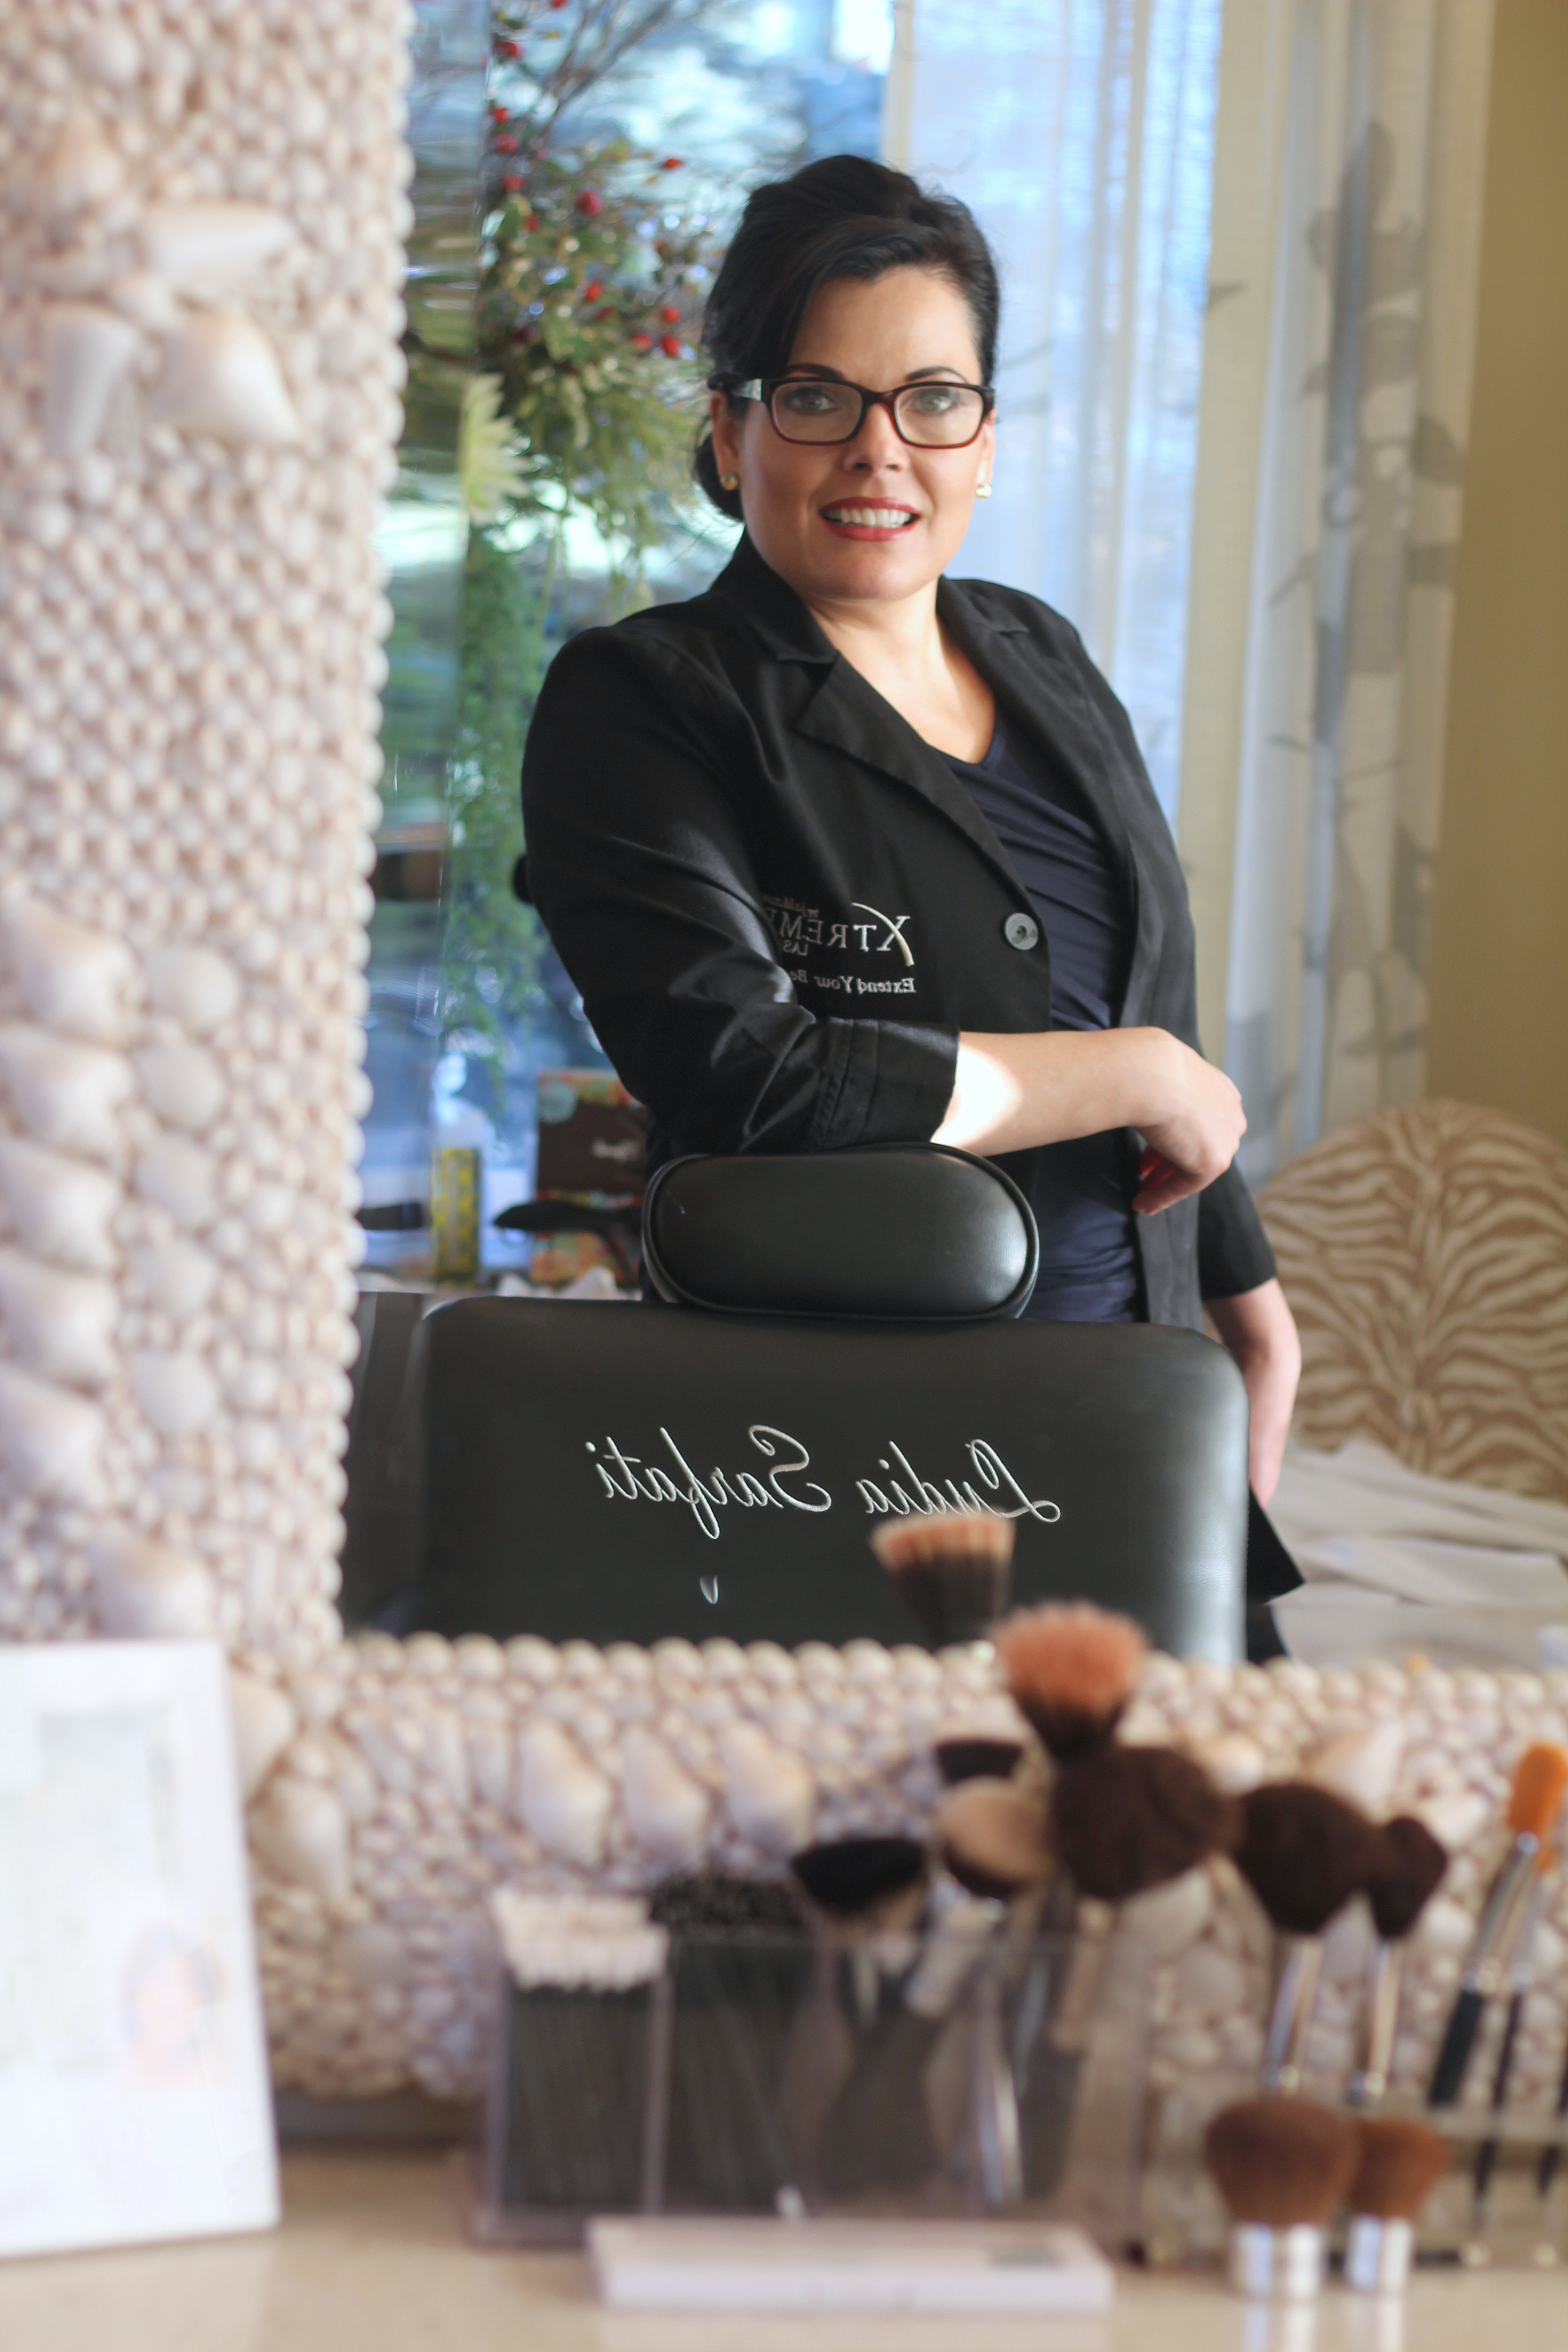 Karen Shealy, Licensed Esthetician/Educator